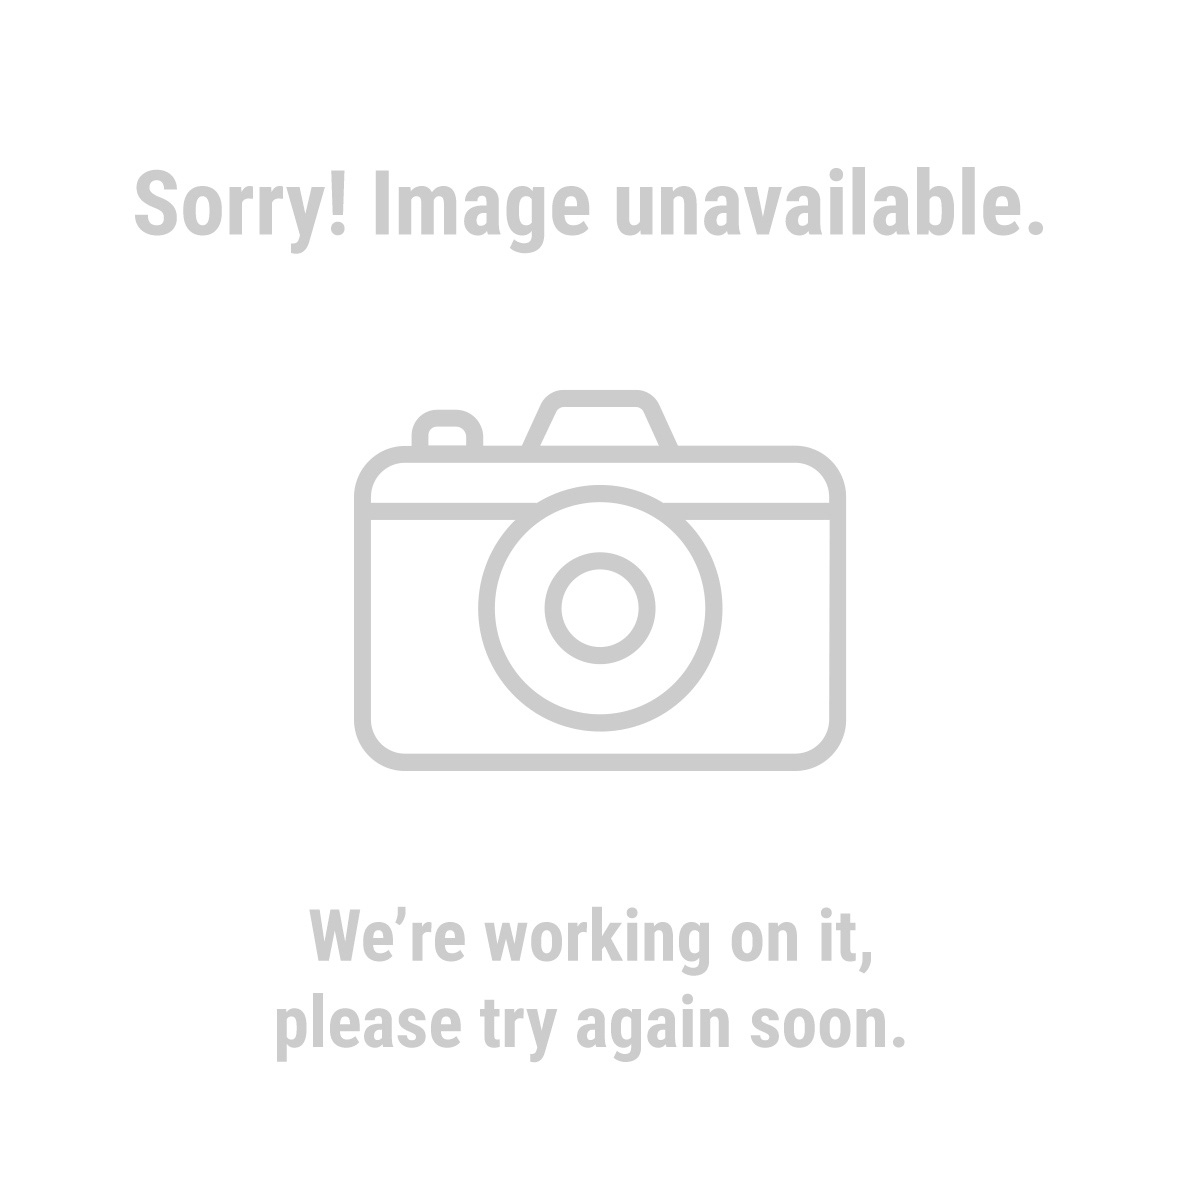 92043 Trailer Hitch Cover with 12 LED Brake Light